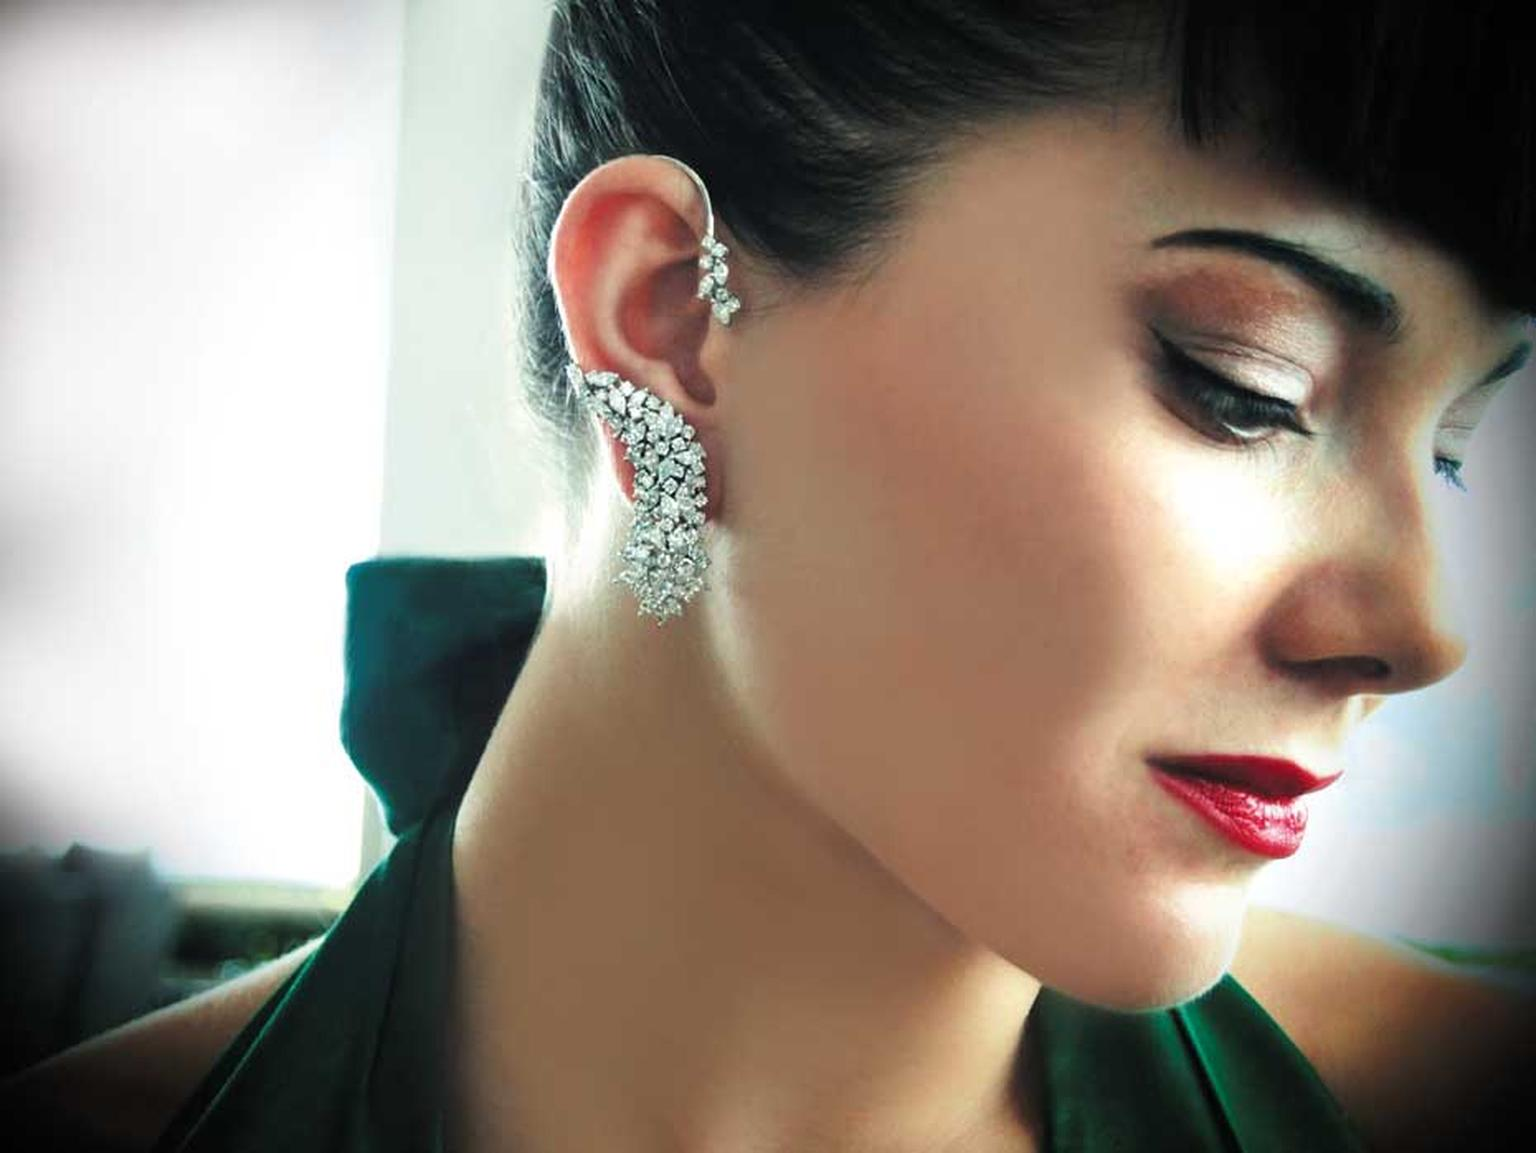 Apostrophe diamond ear cuff available at Plukka.